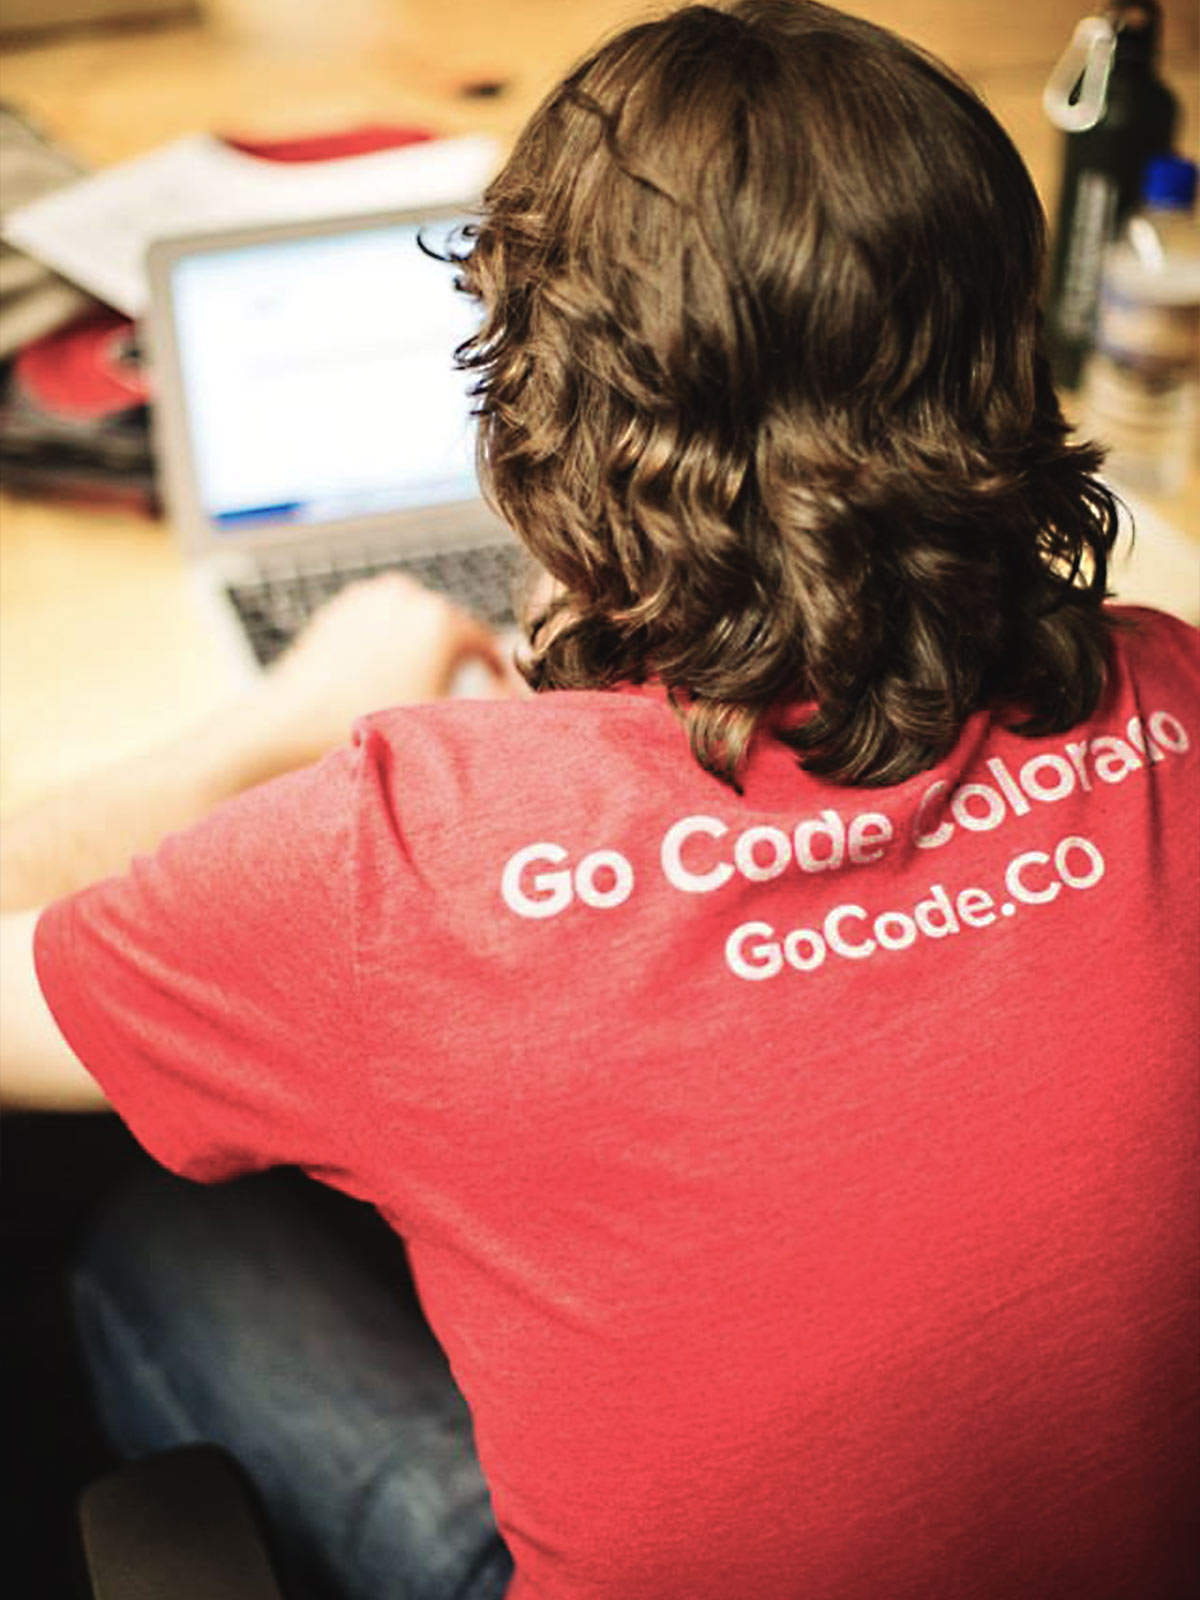 Go Code Colorado T-Shirt